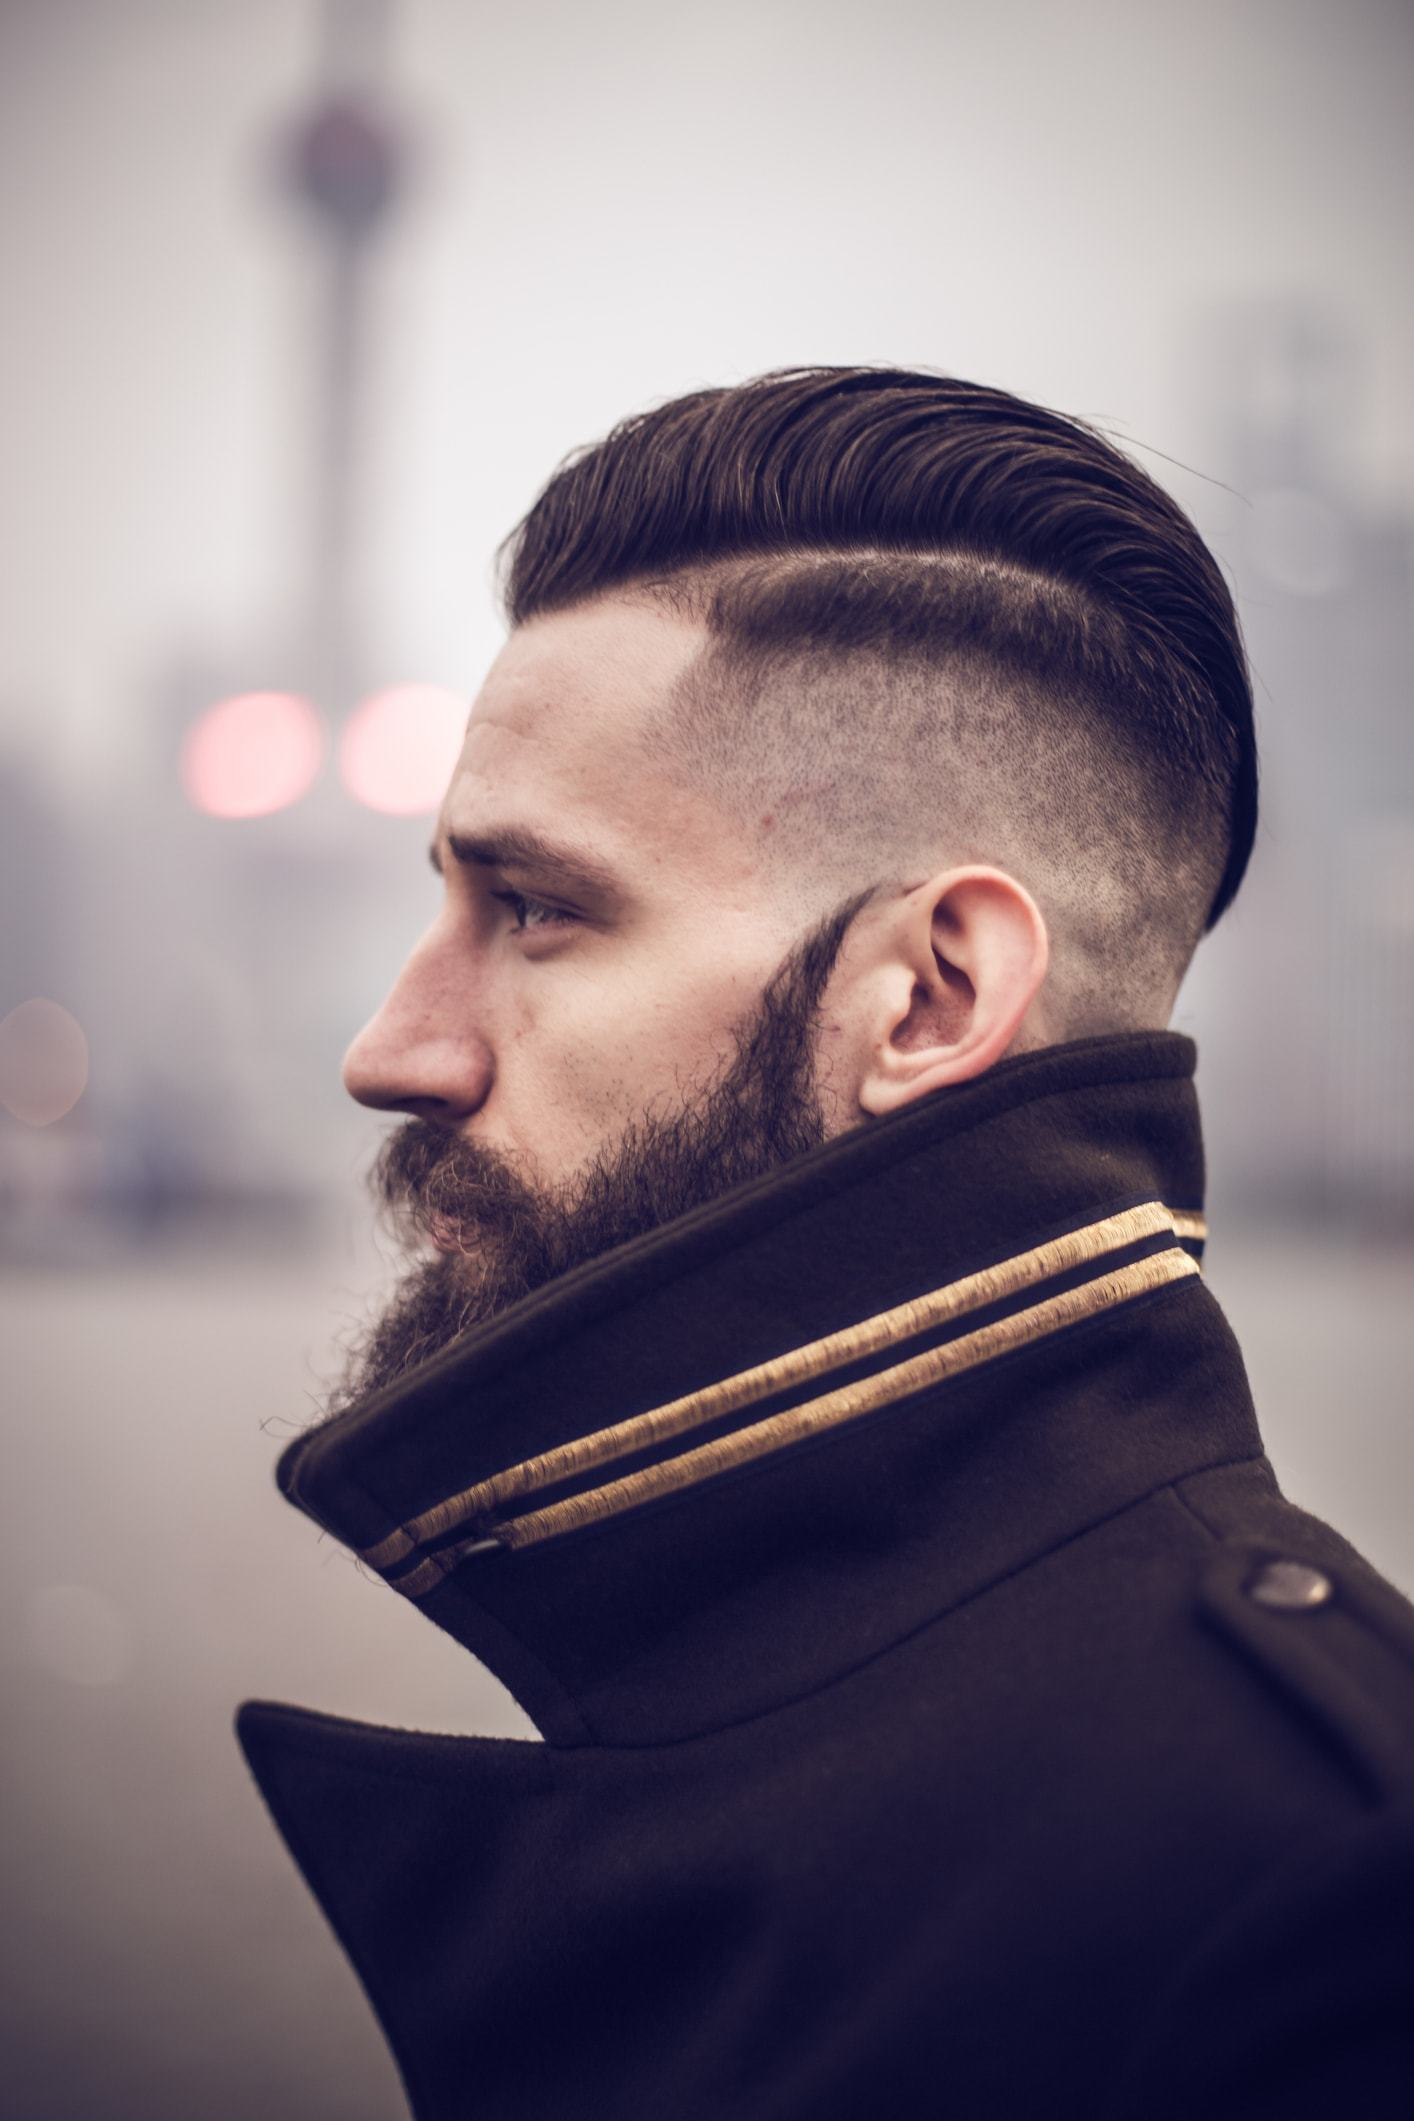 Fusey Haircut 10 Reasons To Get In On This Trend